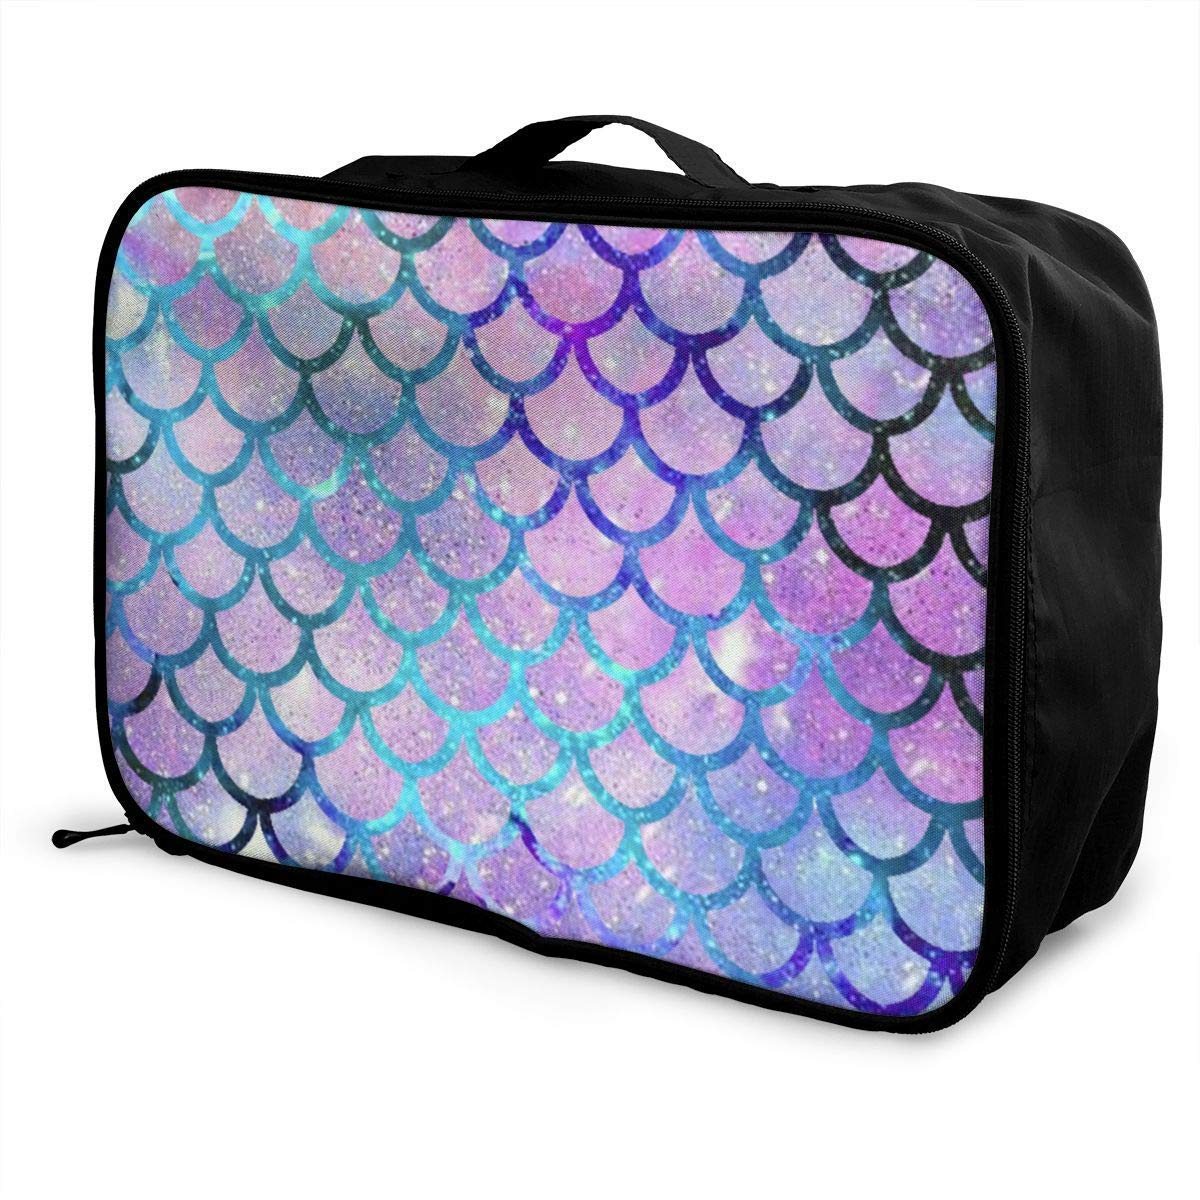 Portable Luggage Duffel Bag Mermaid Scales Fashion Galaxy Pattern Travel Bags Carry-on in Trolley Handle JTRVW Luggage Bags for Travel